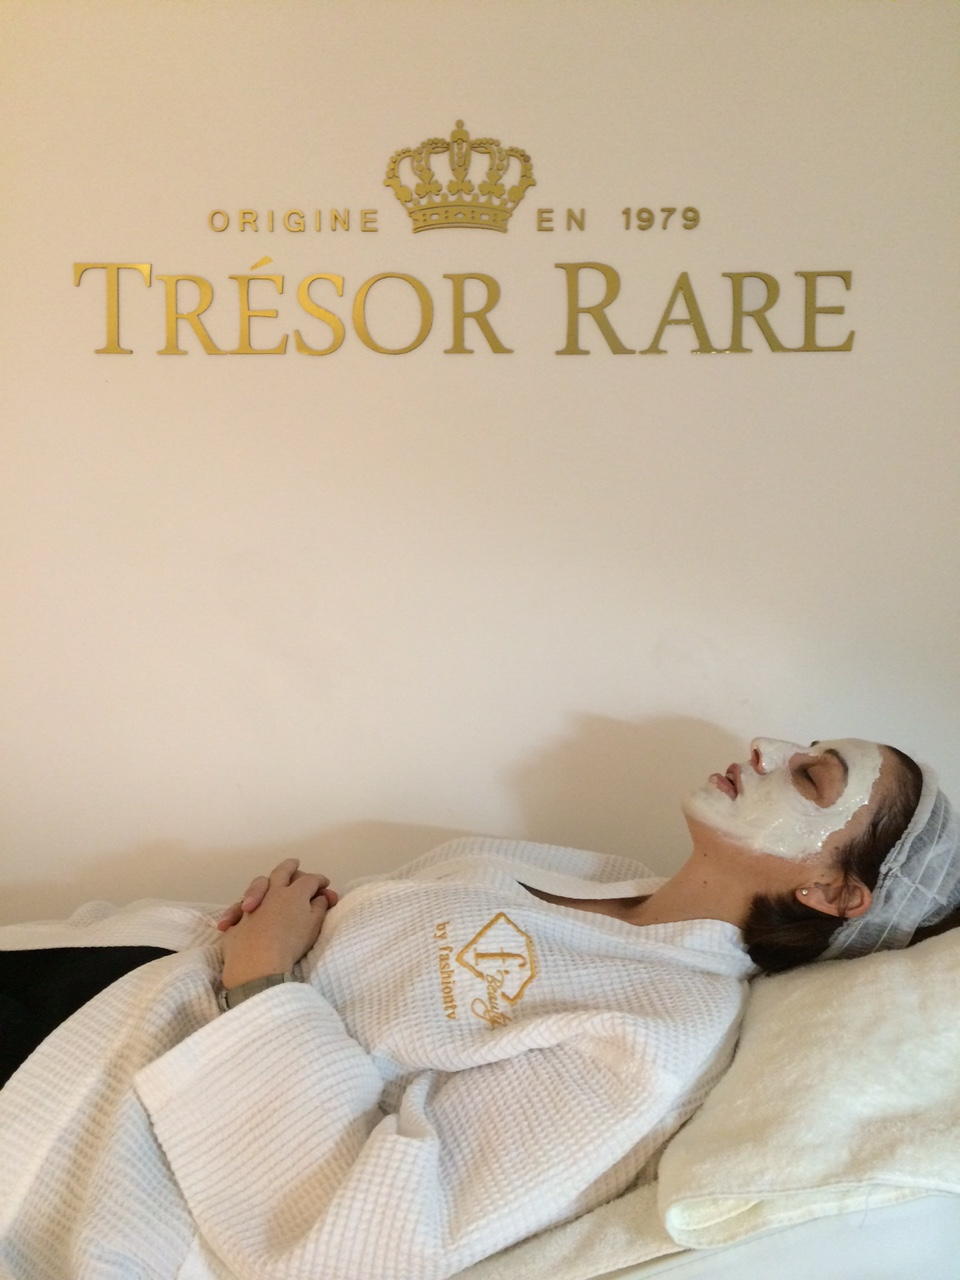 Tresor Rare £1000 Diamond Facial Review